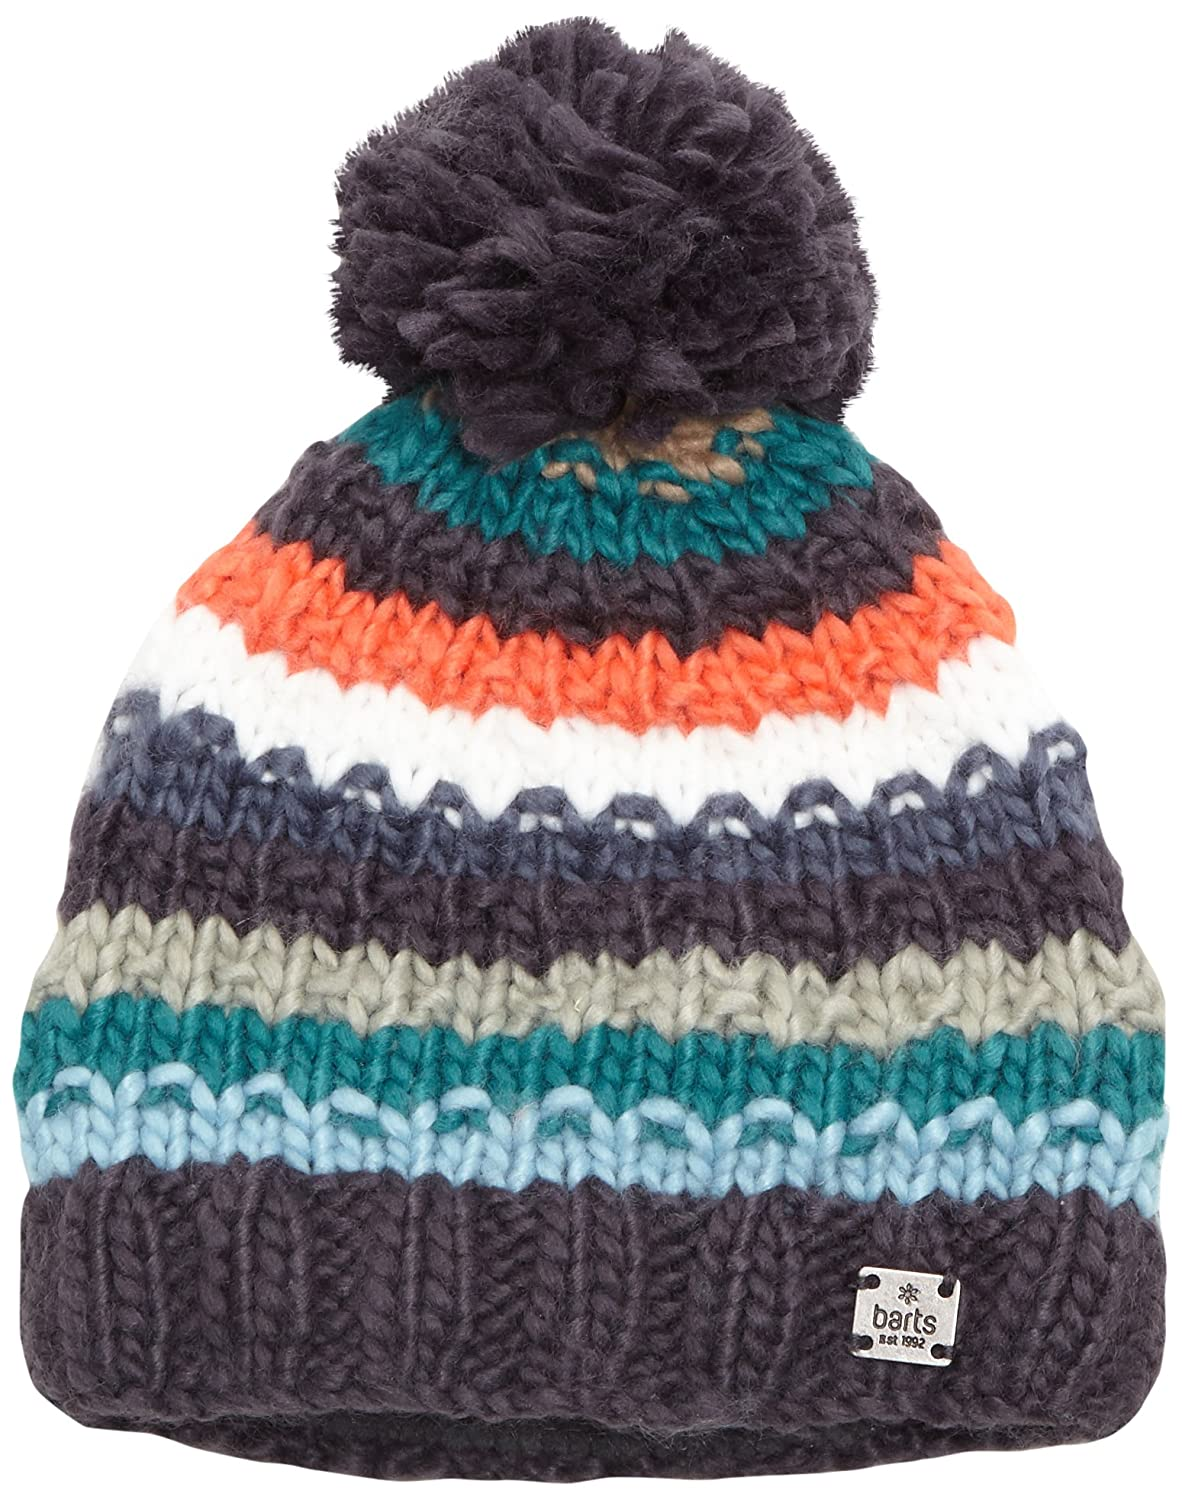 Barts Spirit Beanie KIDS charcoal